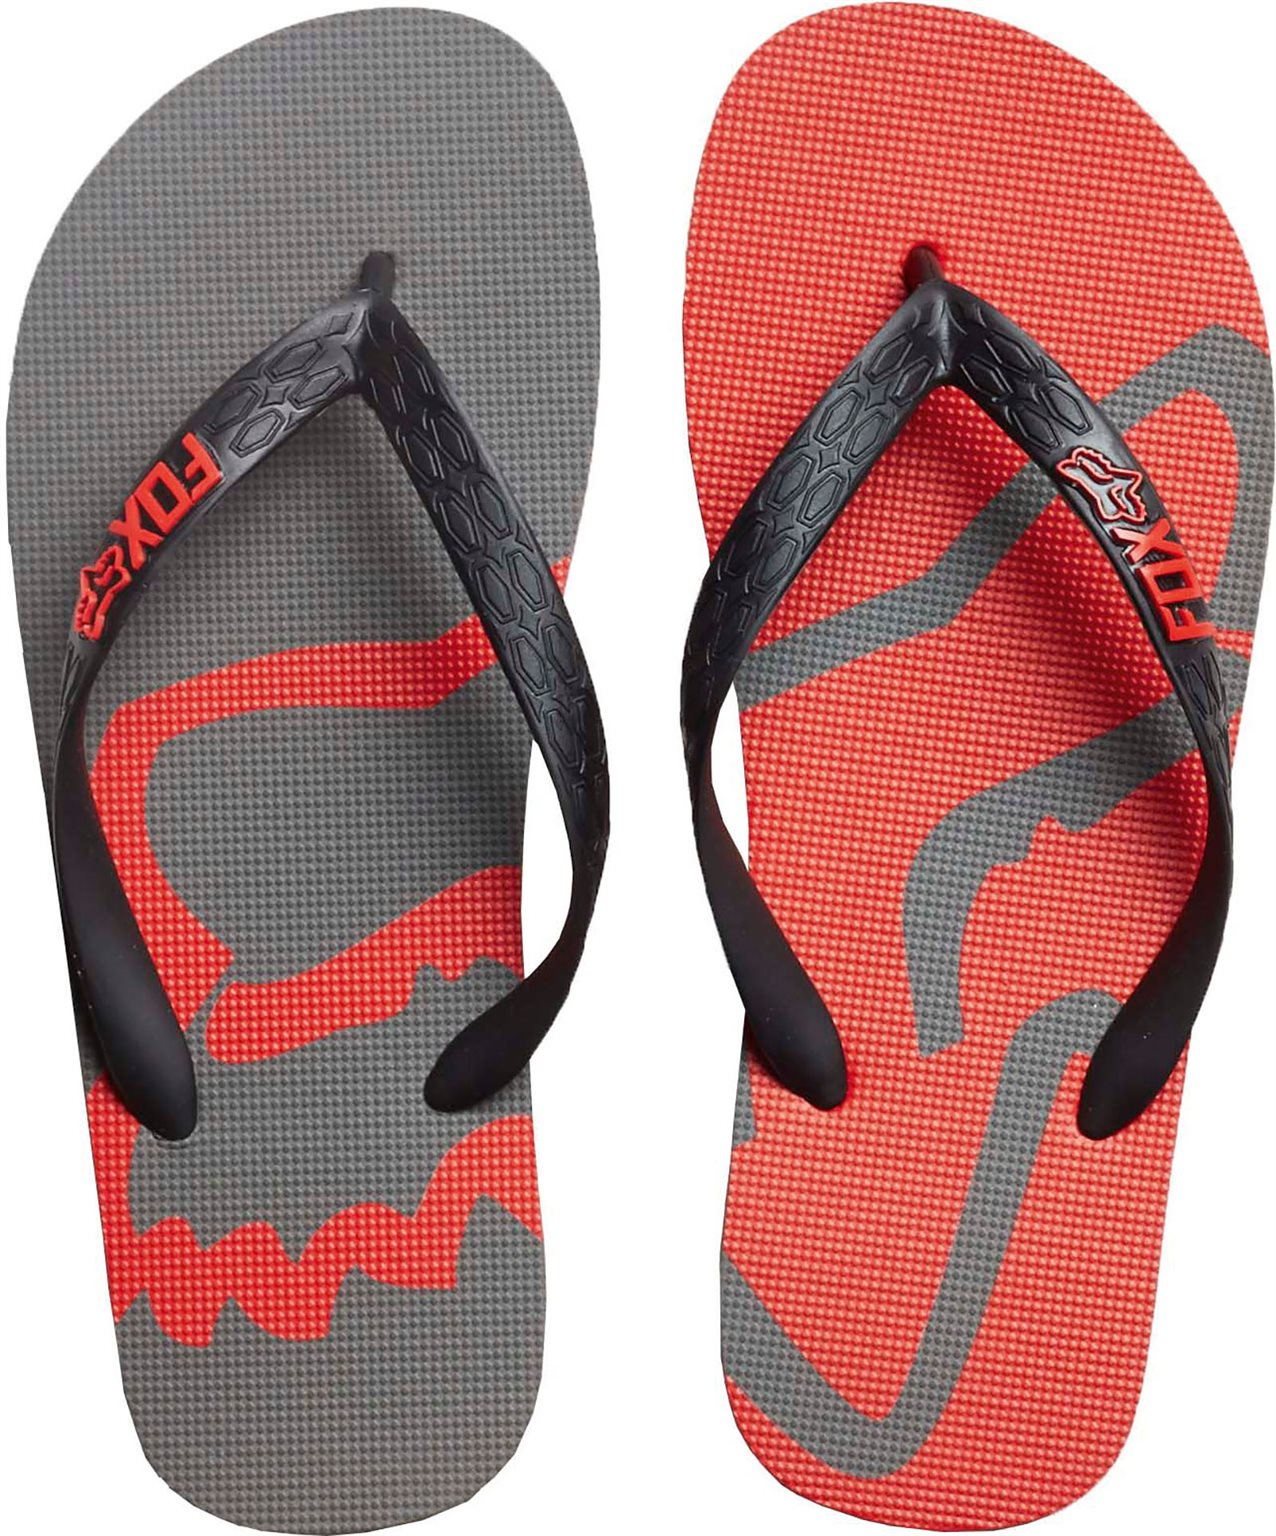 Fox Flip Flop Beached